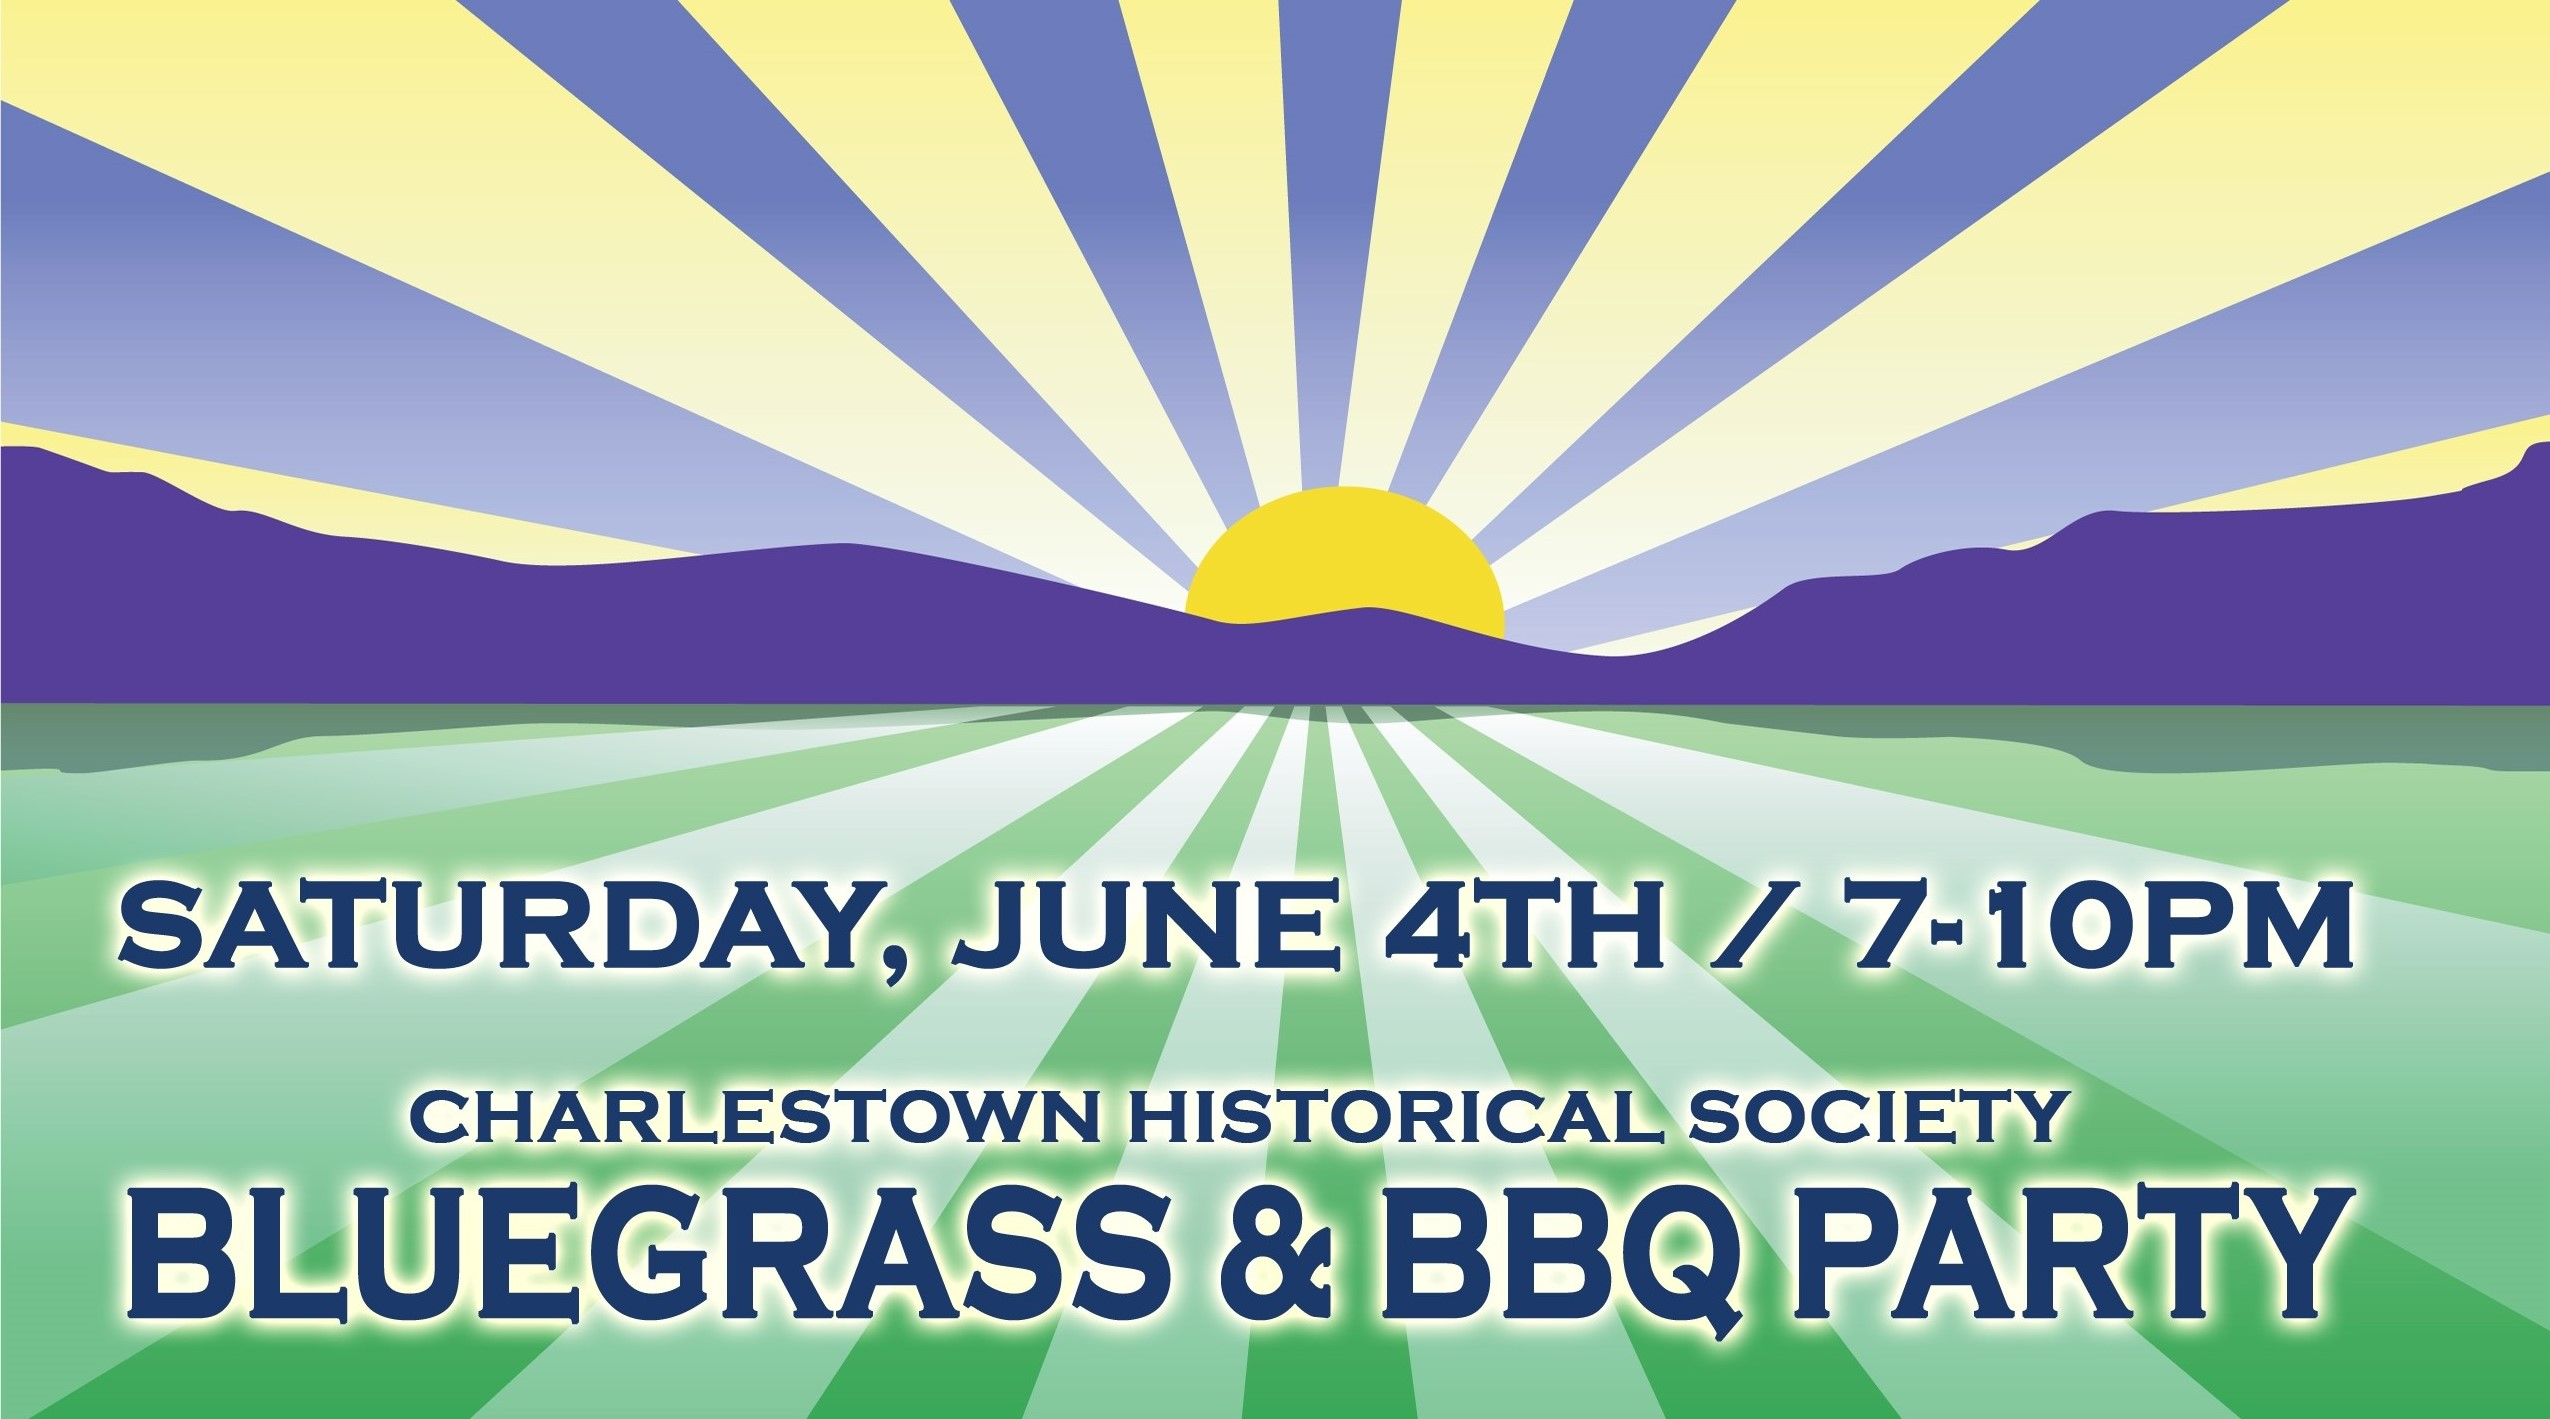 Charlestown Historical Society: Bluegrass & BBQ party